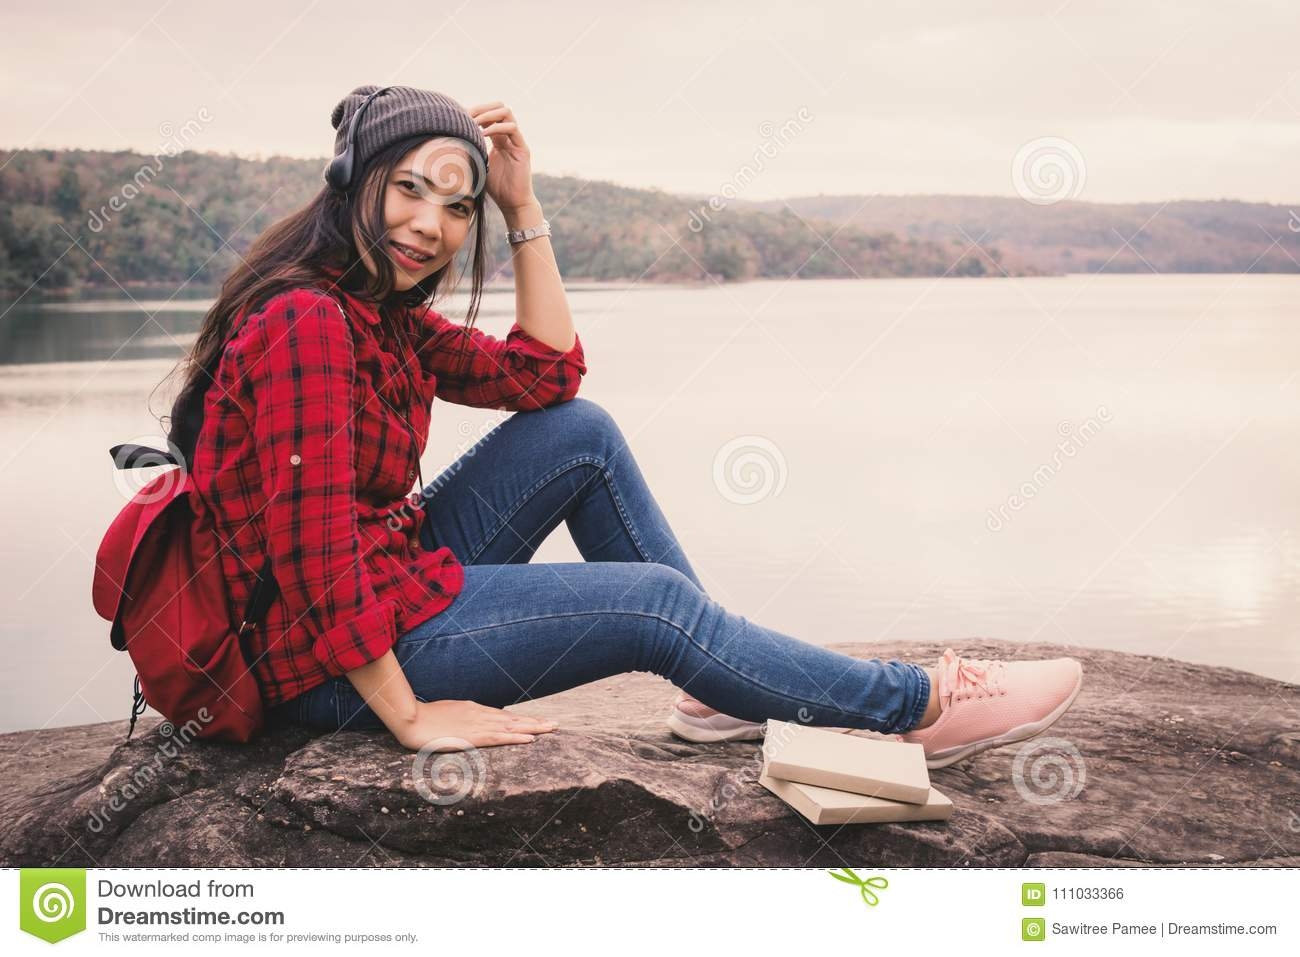 Happy Asian woman backpacker relaxing on holiday travel concept